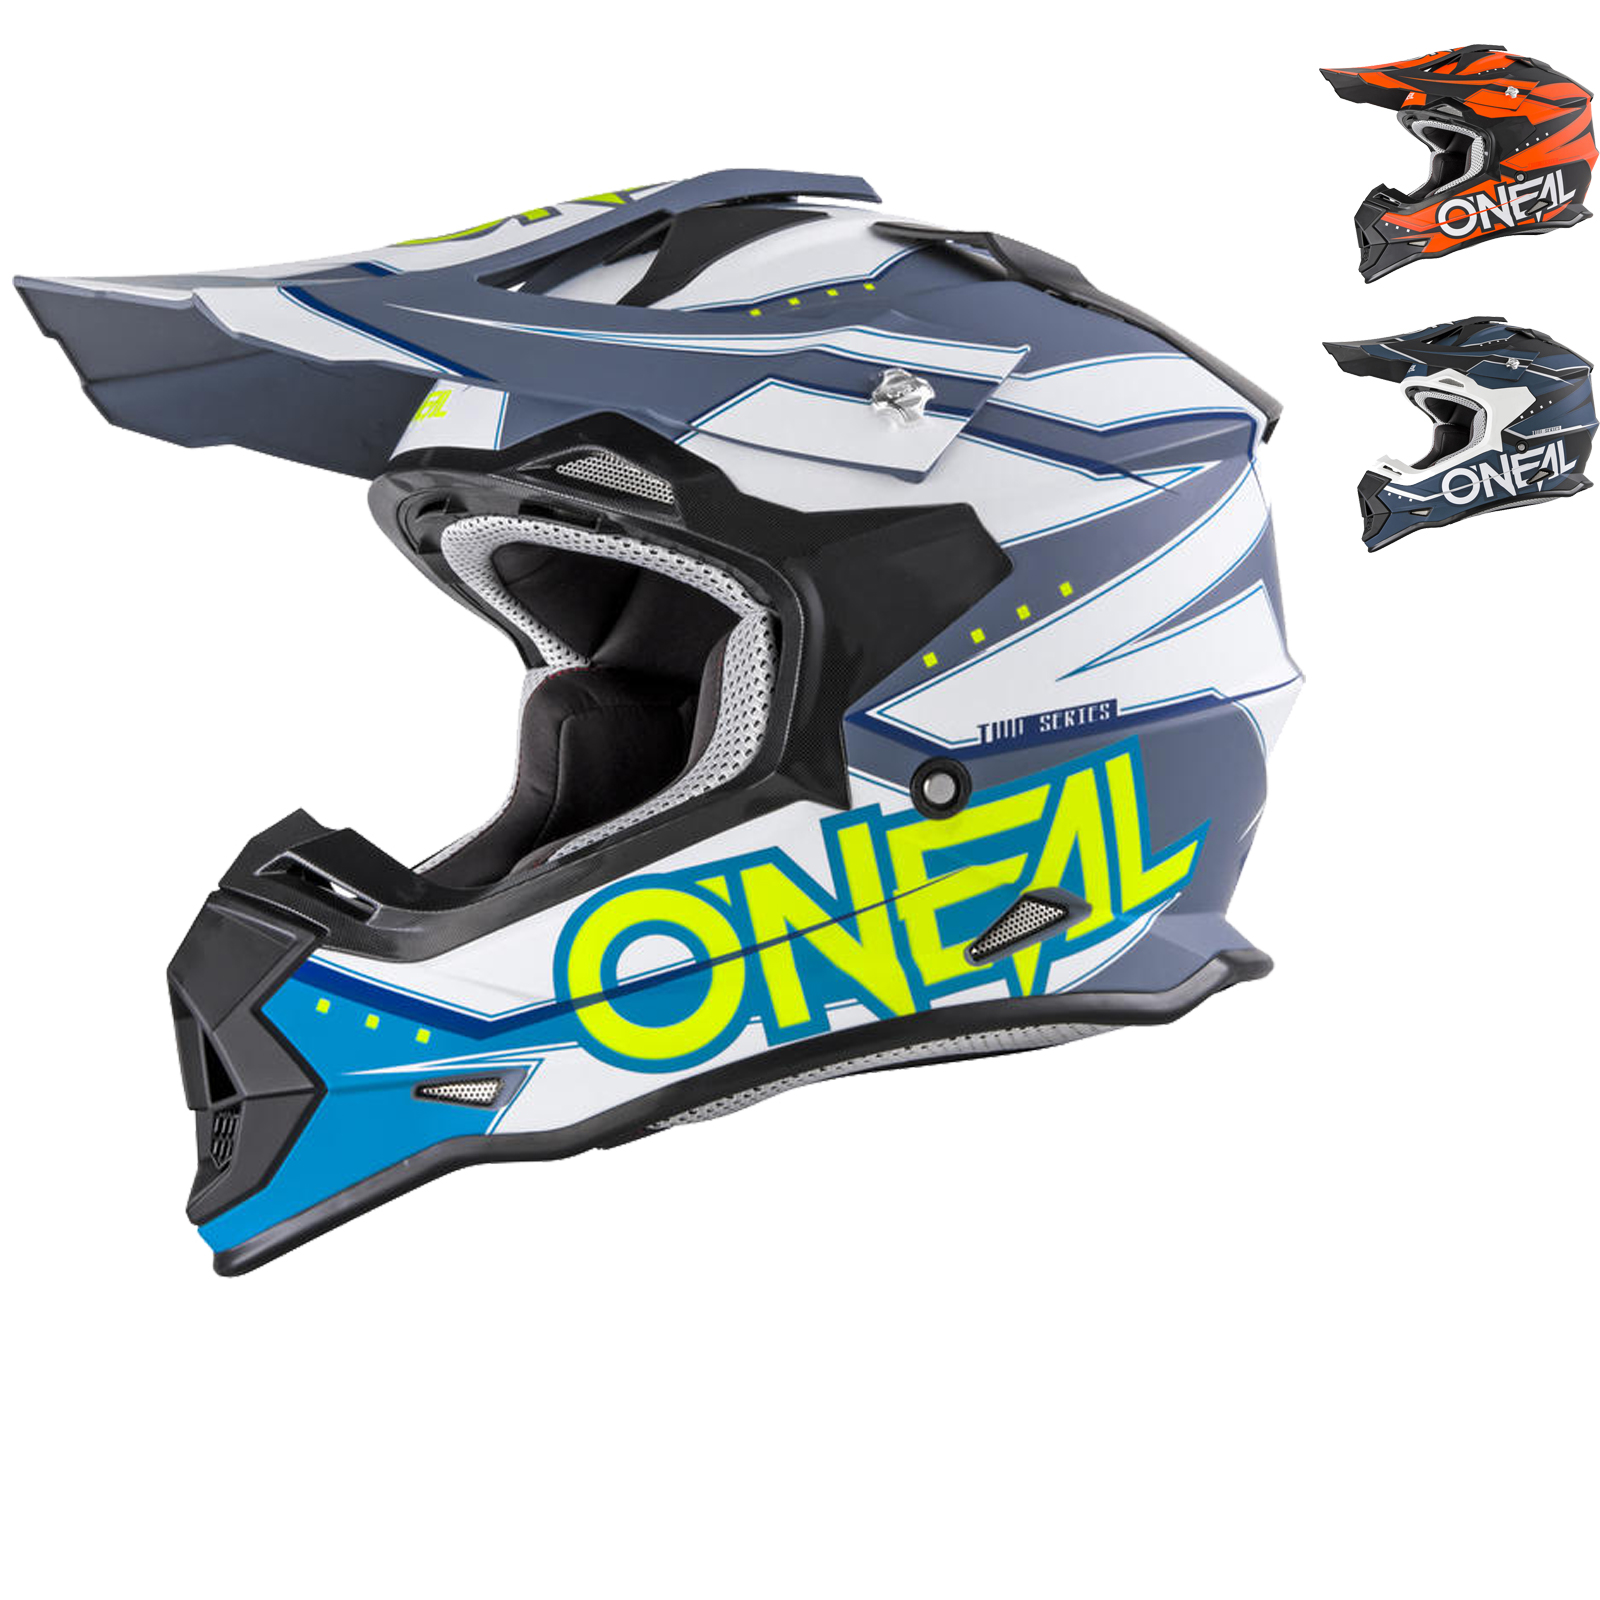 oneal 2 series rl slingshot motocross helmet helmets. Black Bedroom Furniture Sets. Home Design Ideas